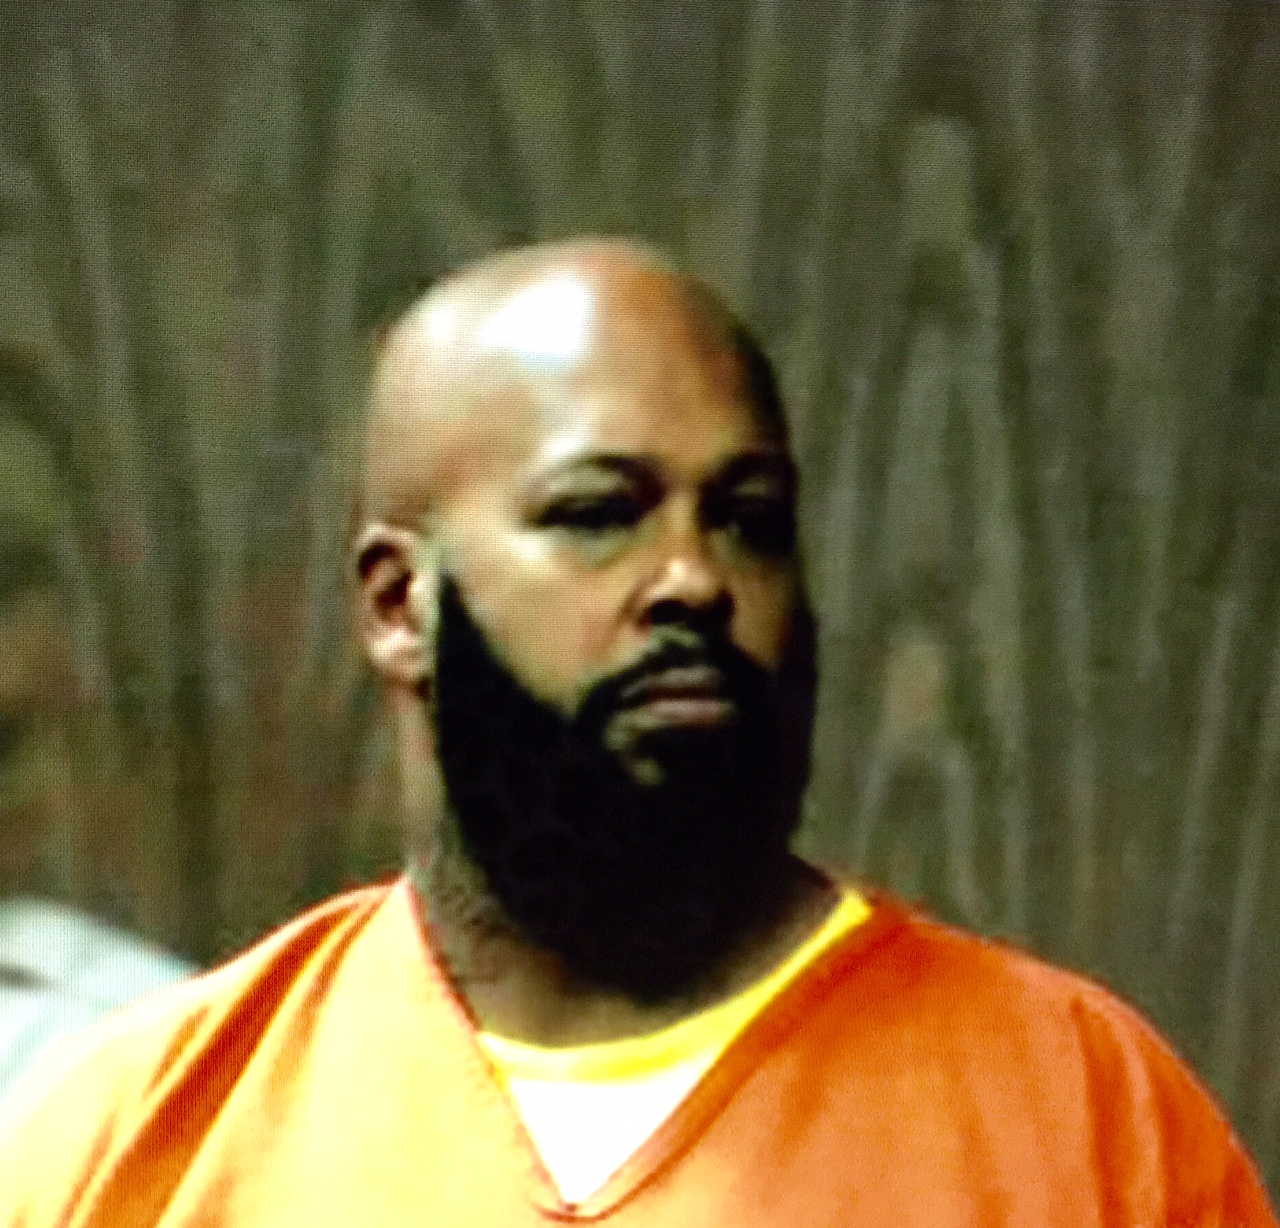 Suge Knight faces additional charges